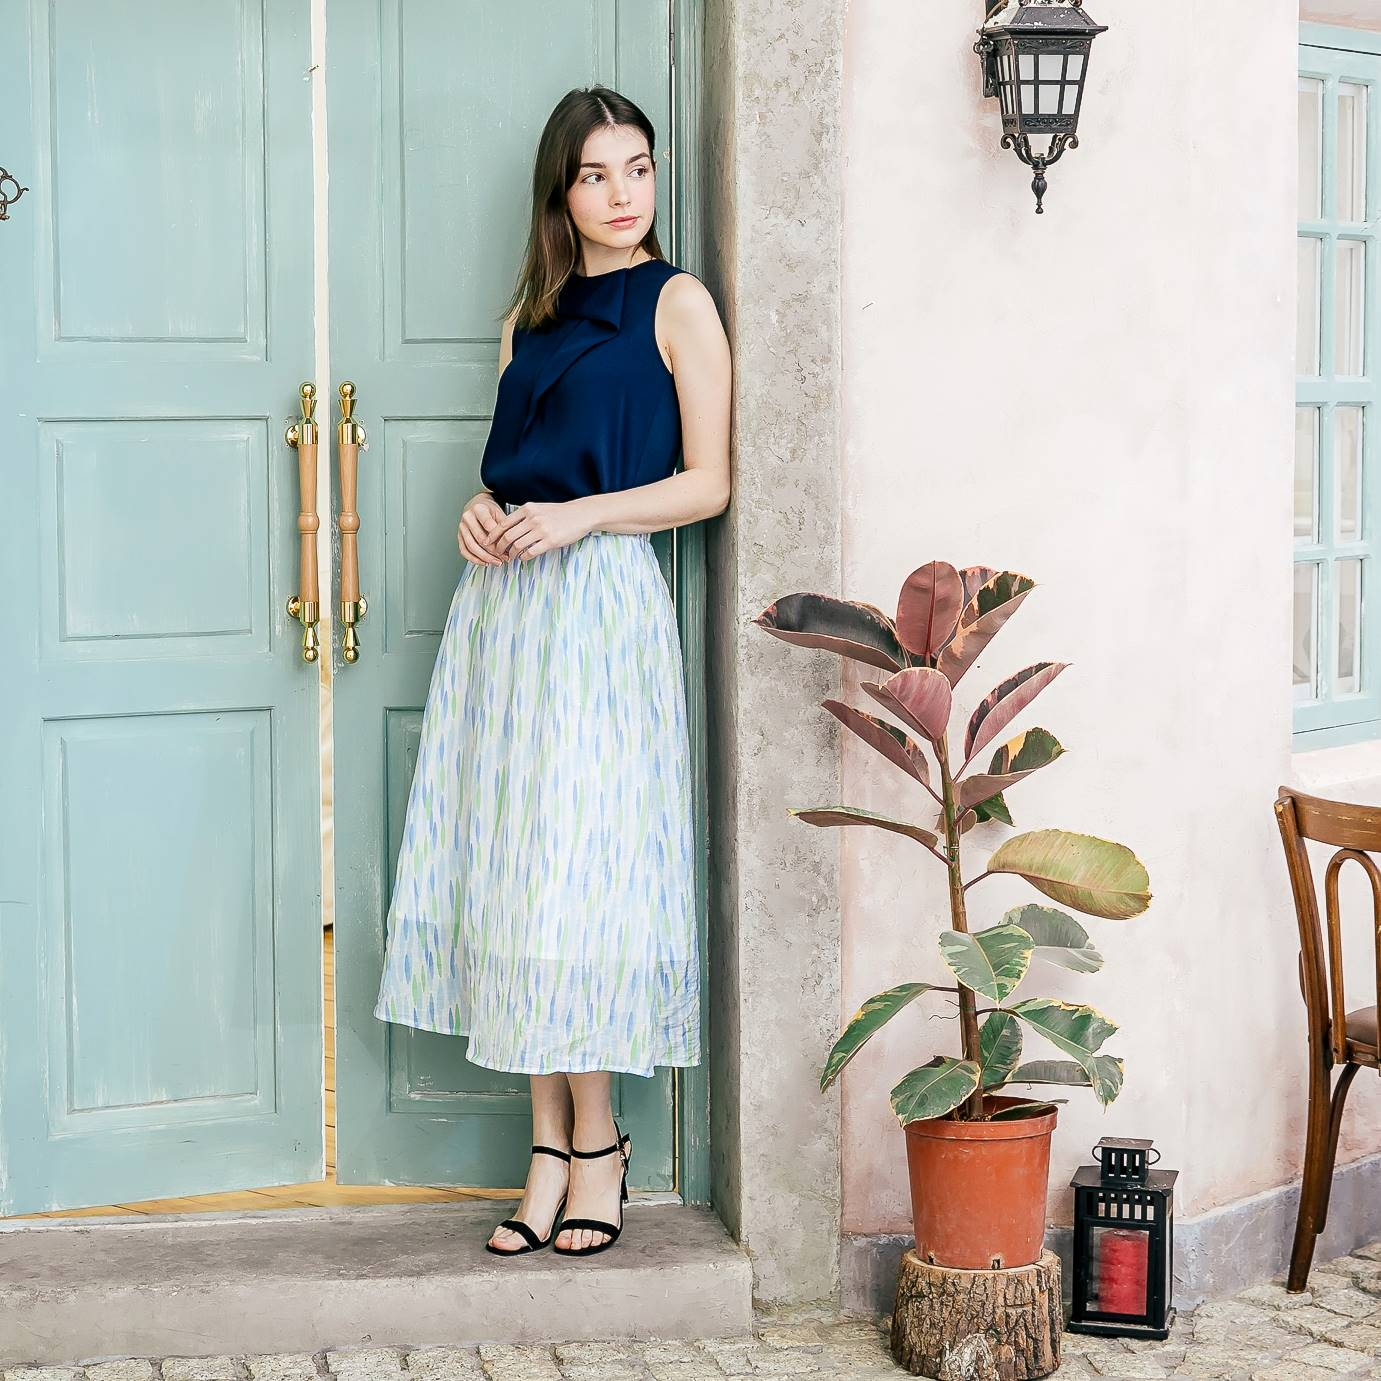 Woman skirt- blue strip skirt